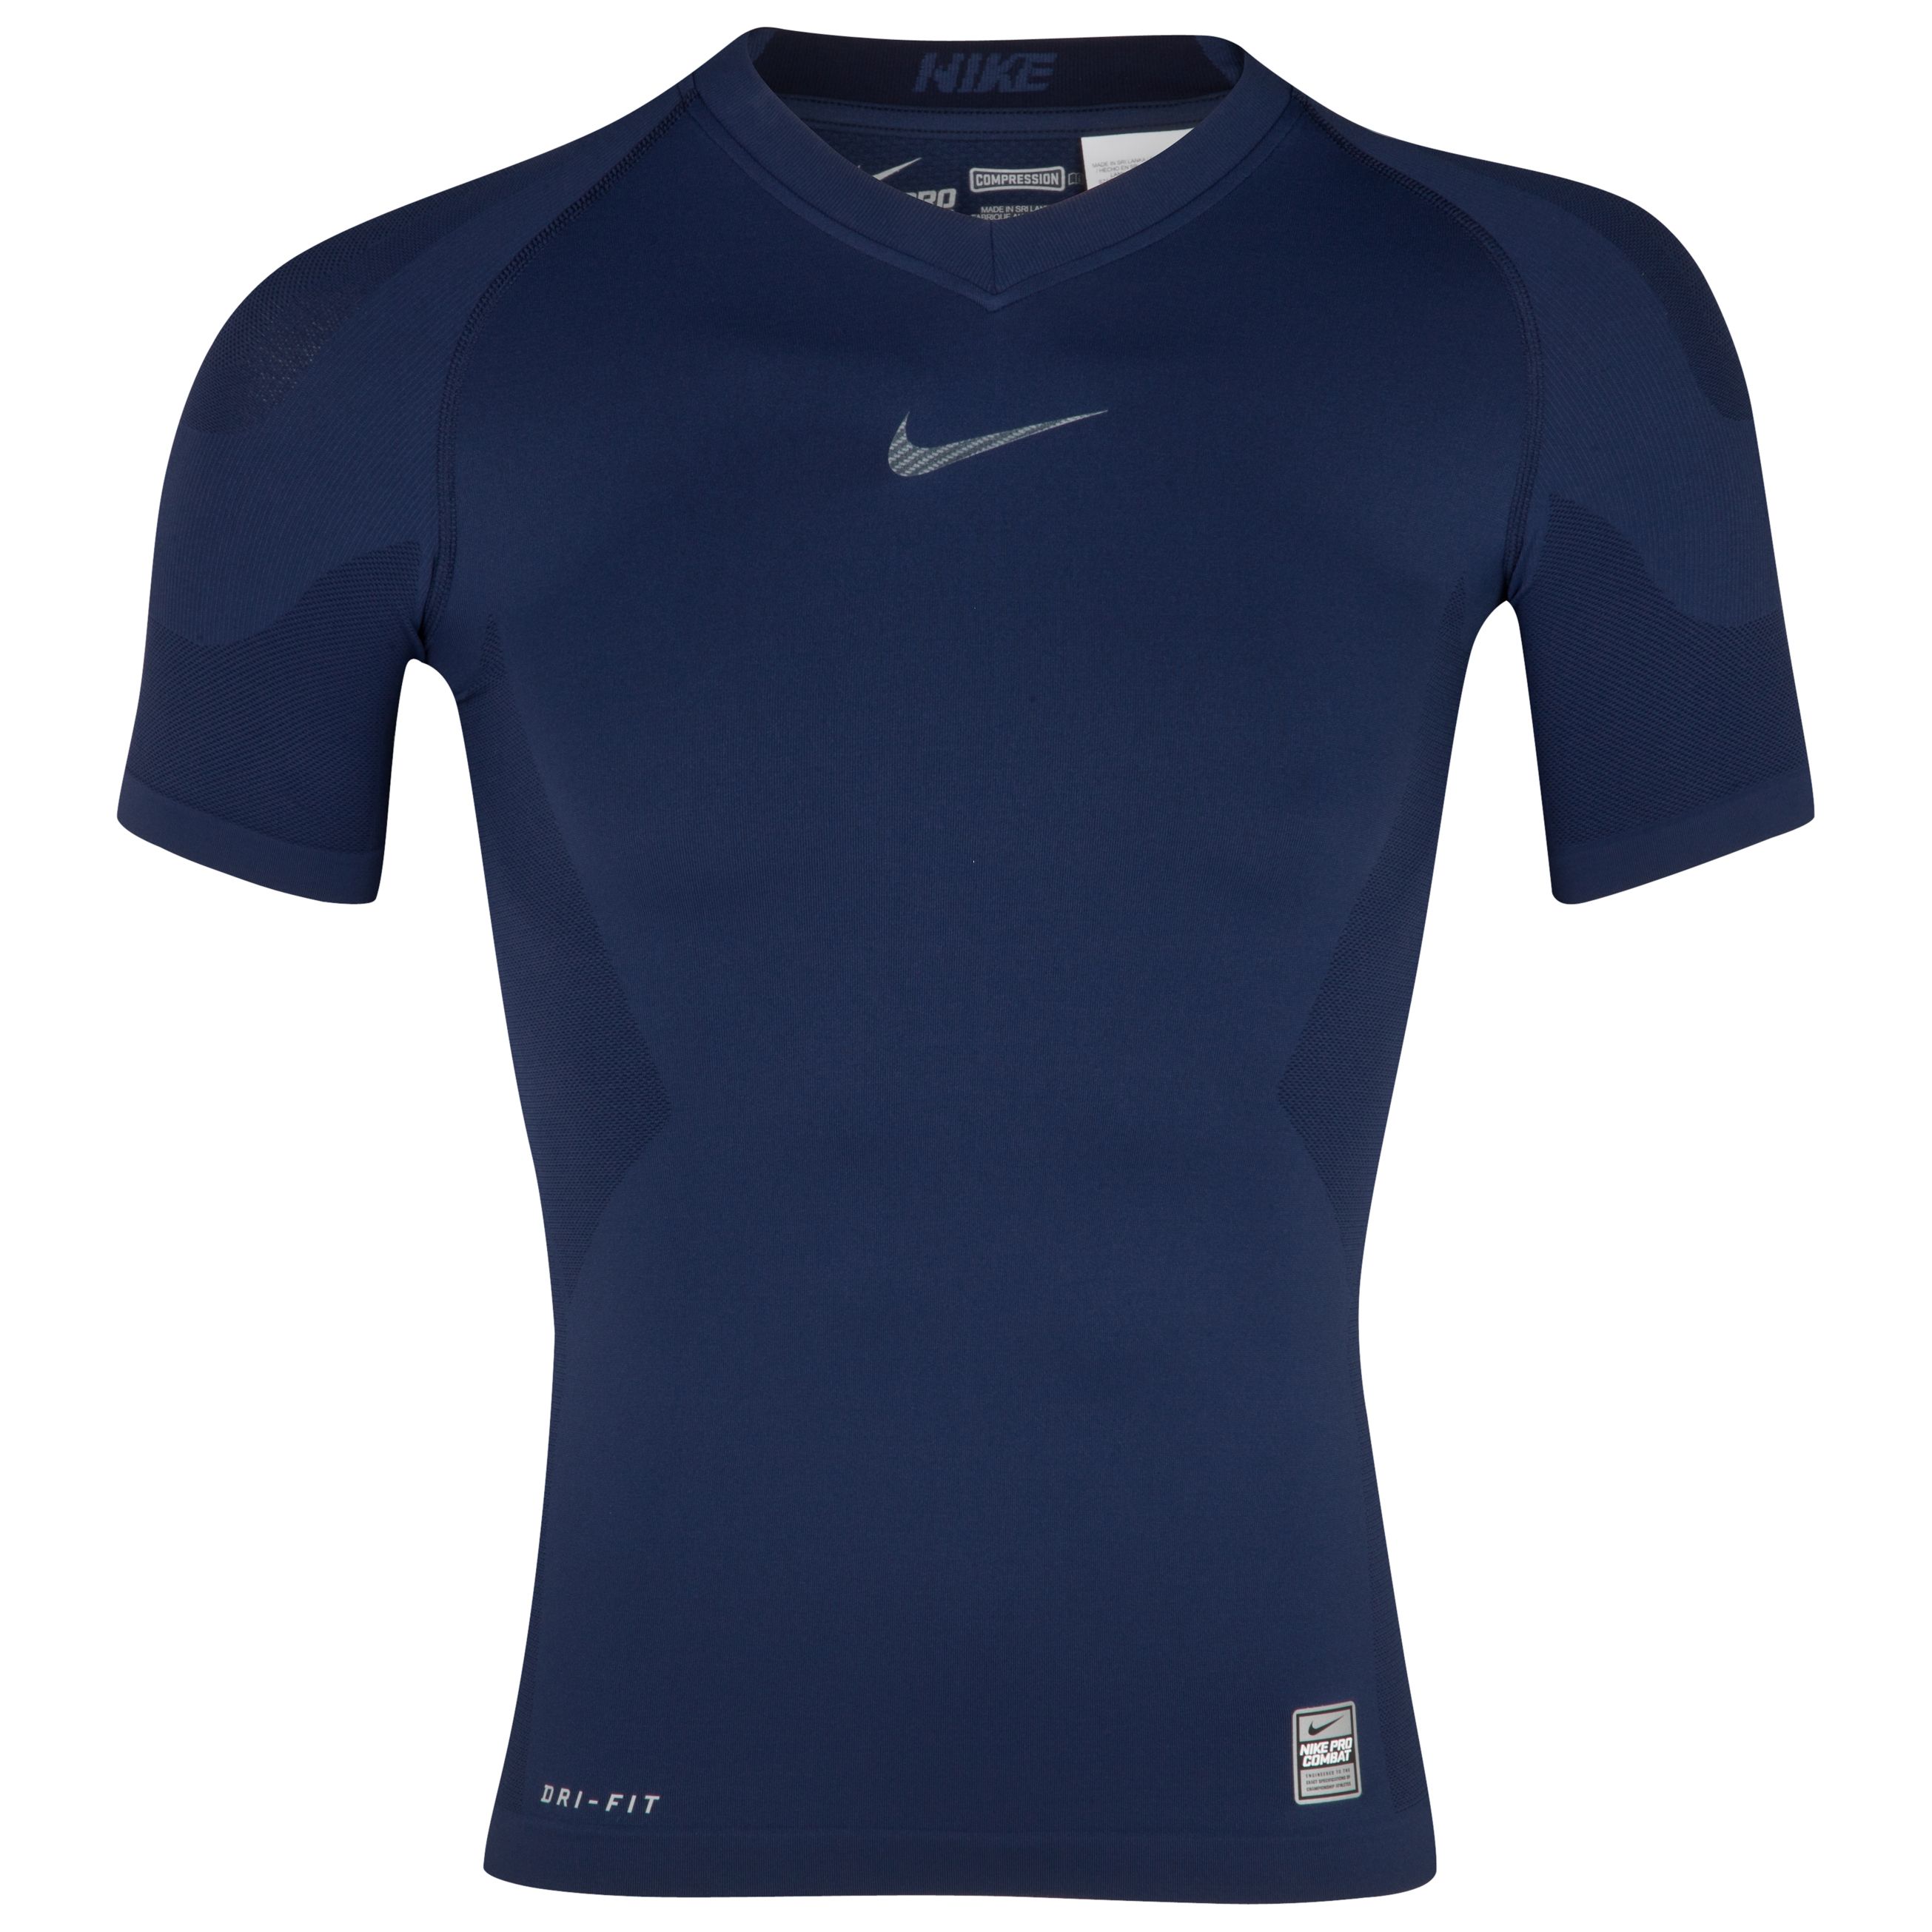 Nike Pro Combat Hypercool Baselayer Top - Midnight Navy